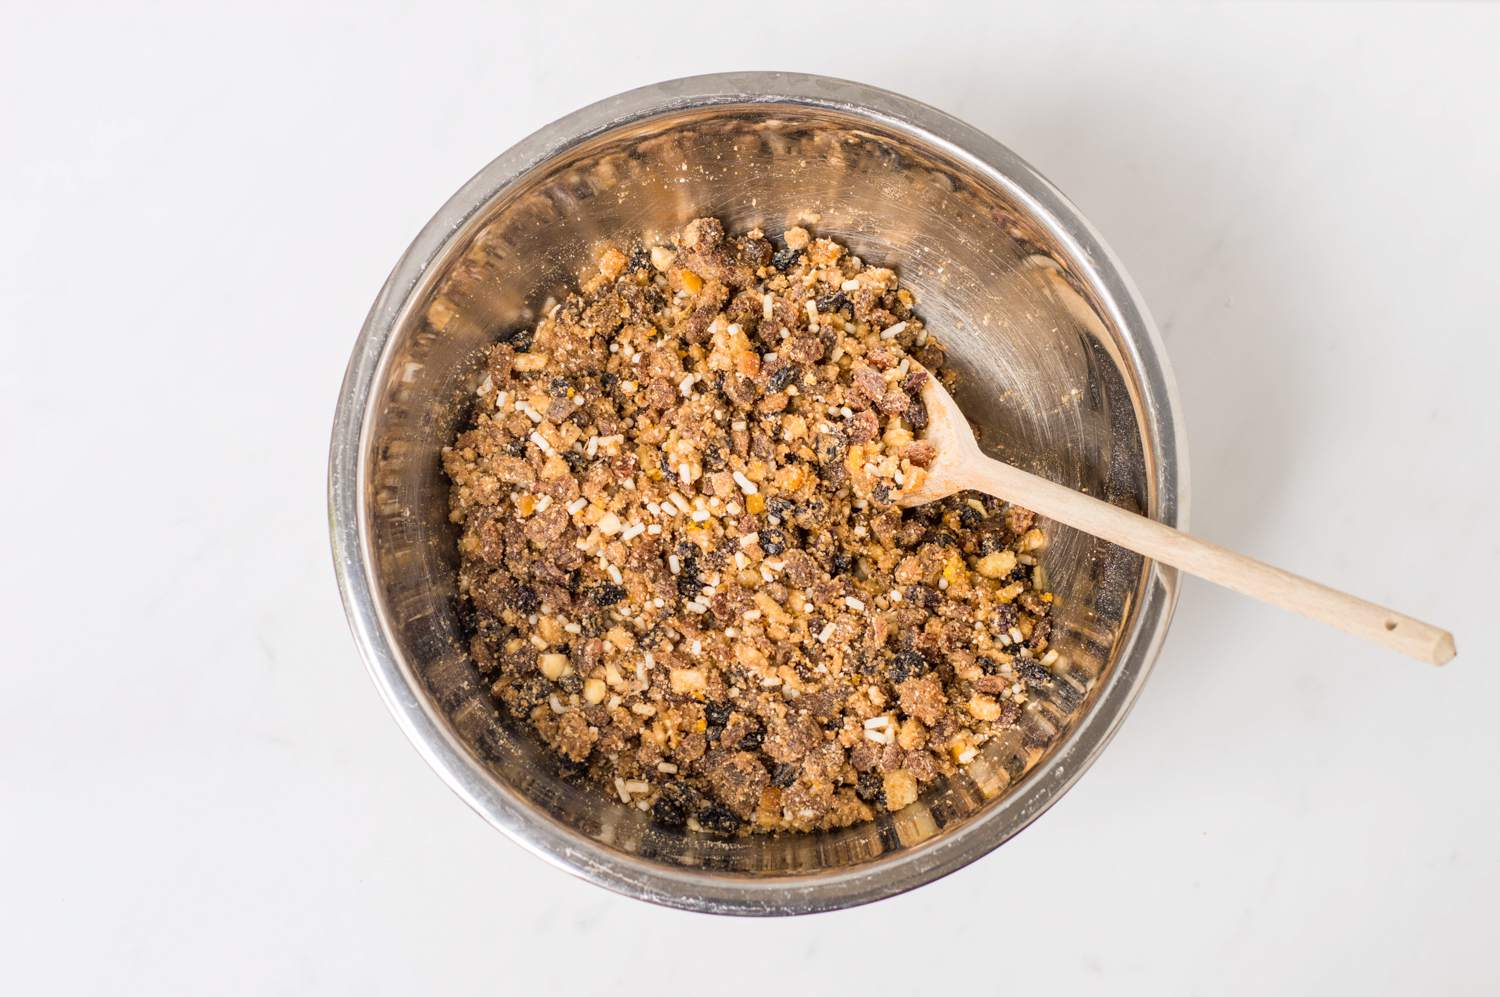 Add dry ingredients to a bowl and add dried fruit mixture